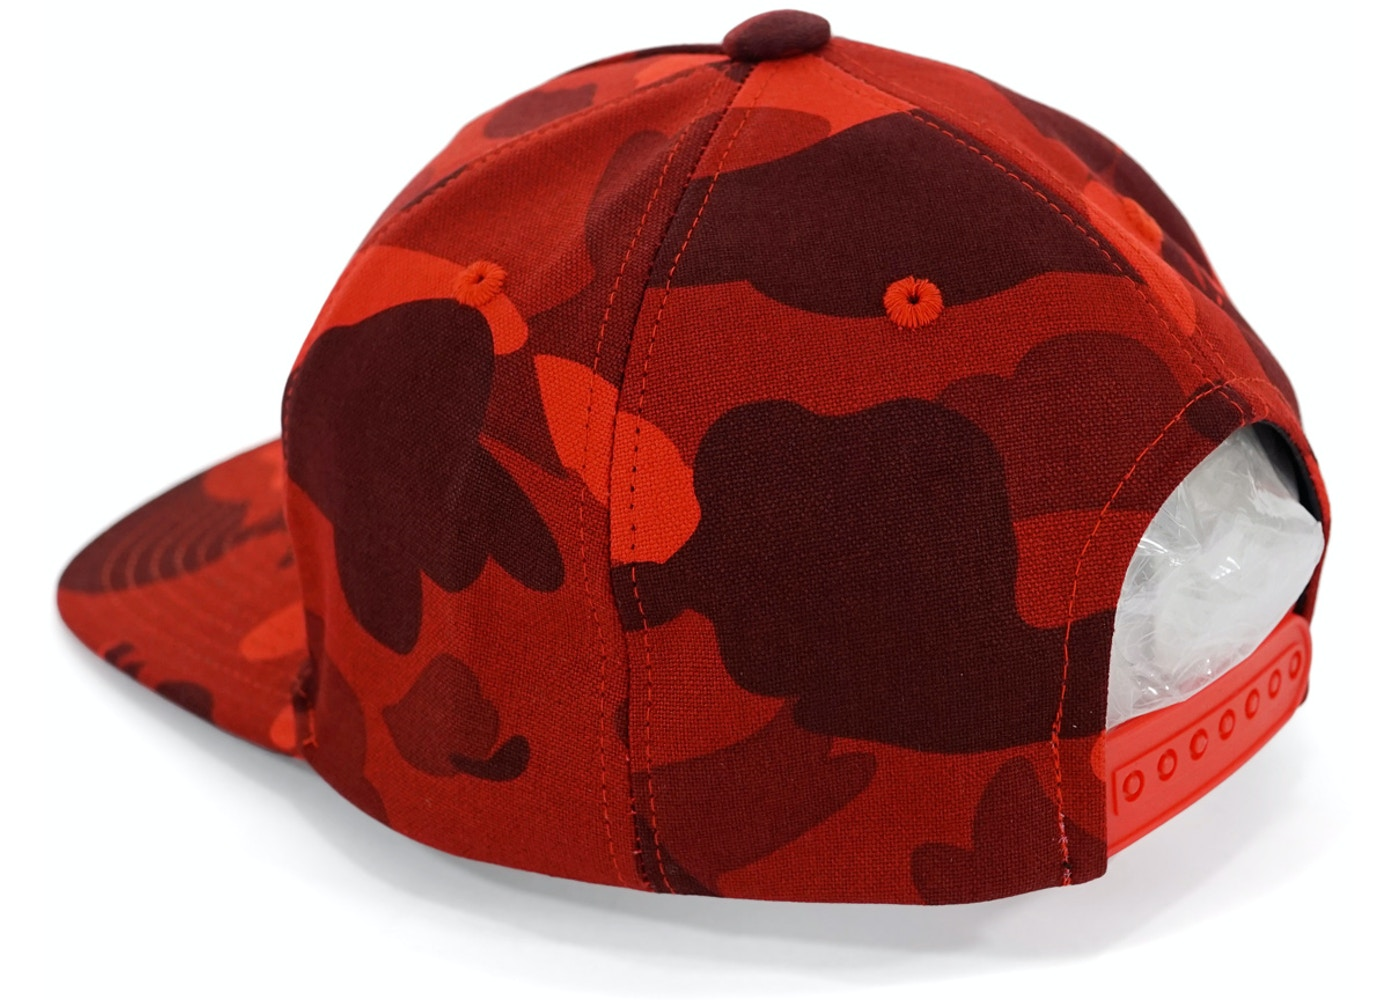 c0d9f41d285 Bape Headwear - Buy   Sell Streetwear